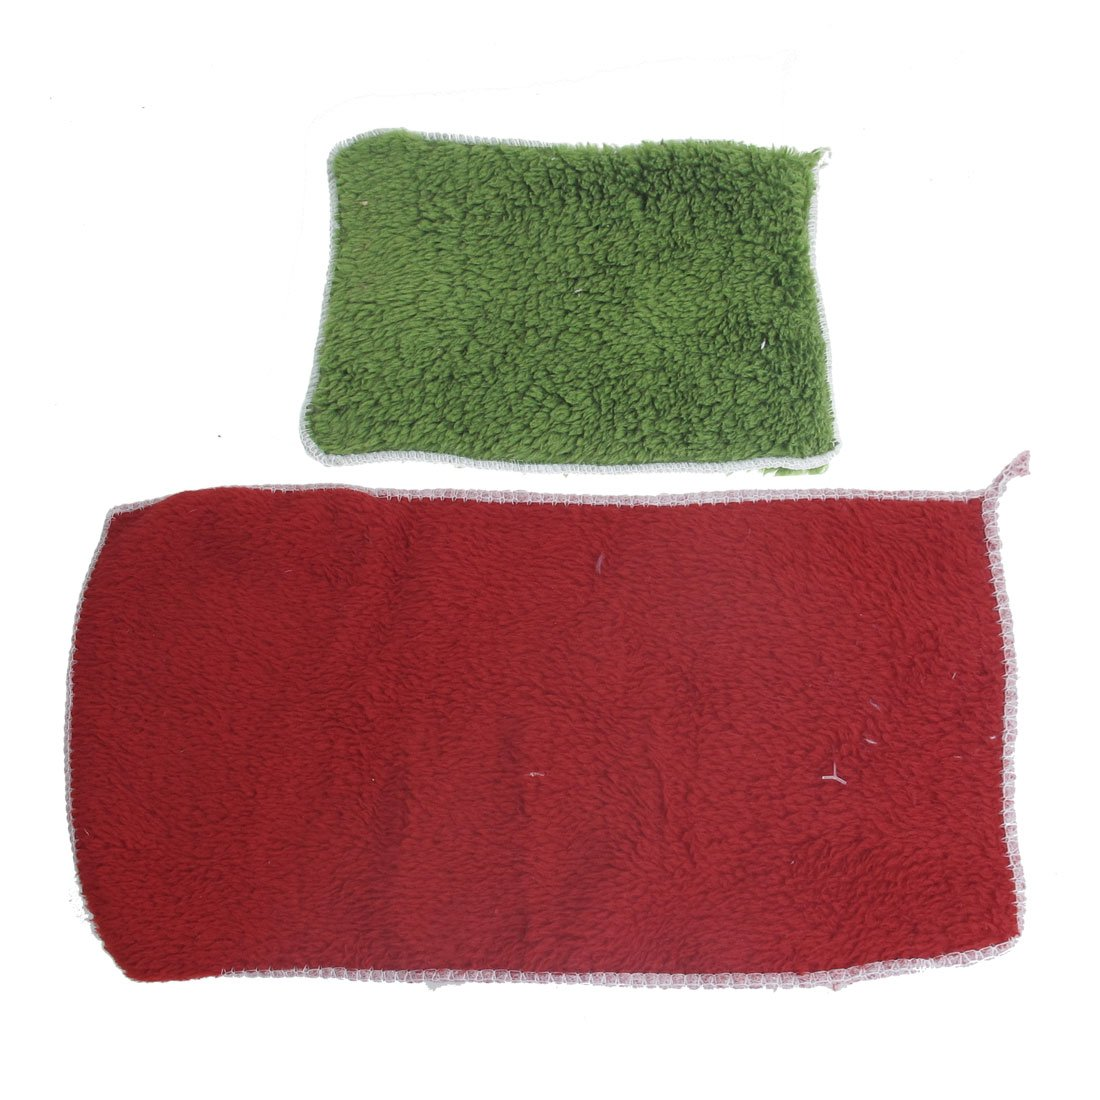 2 Pcs Vehicle Windscreen Clean Washing Towel Burgundy Olive Green clean green drinks